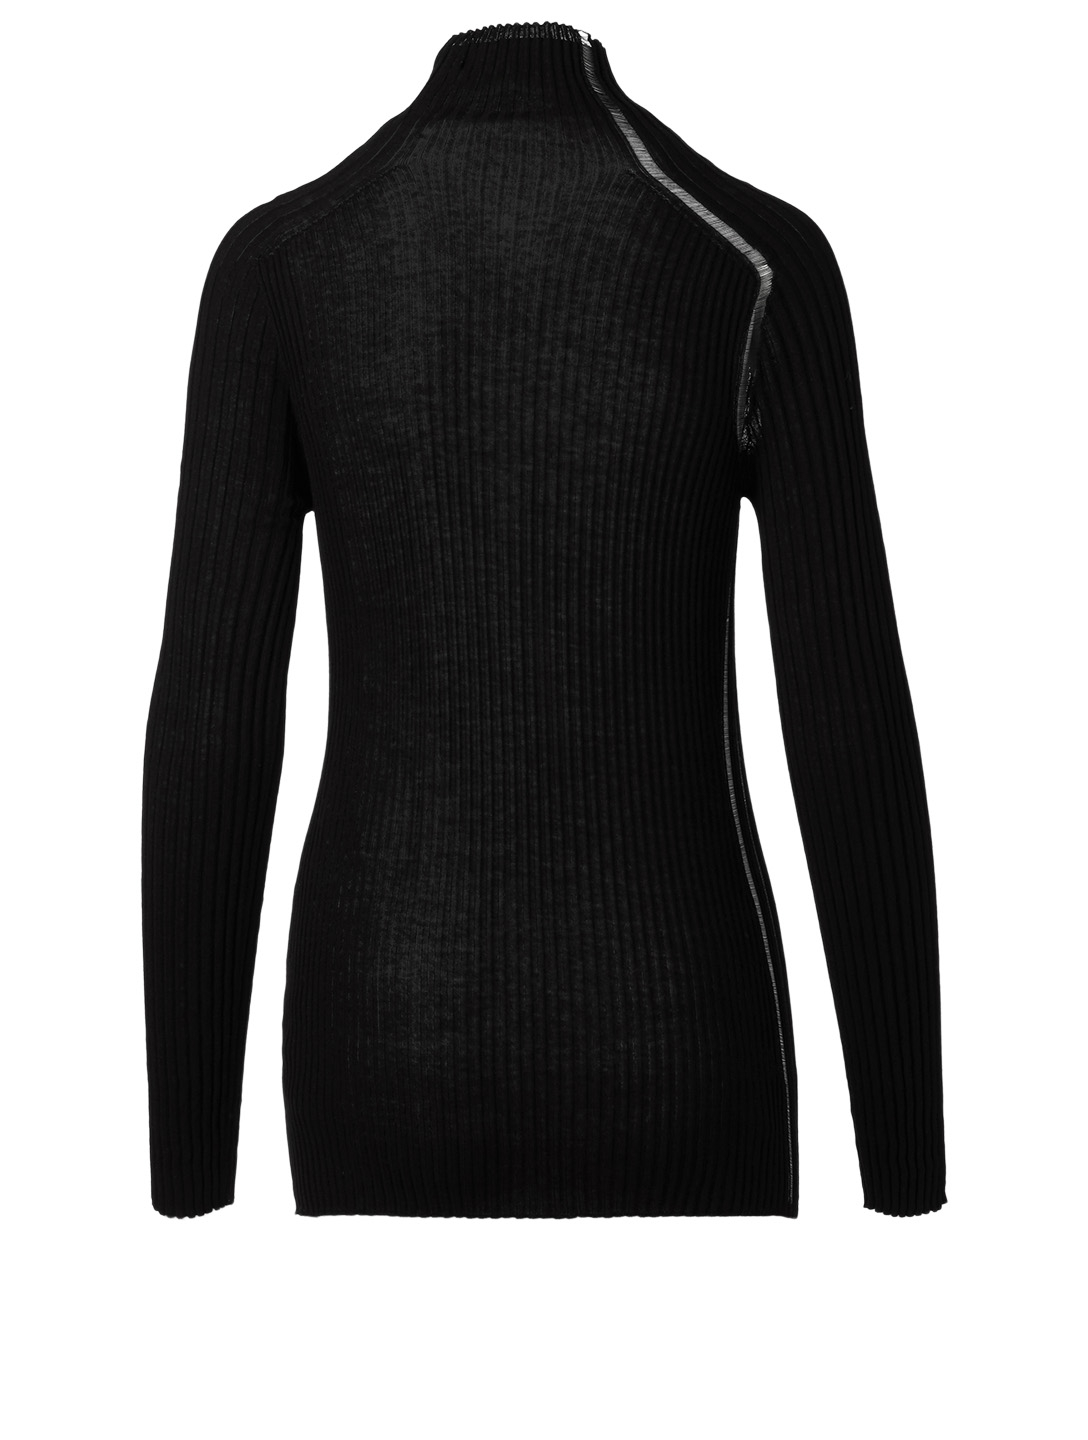 VICTORIA BECKHAM Cotton Ribbed Turtleneck Top Women's Black